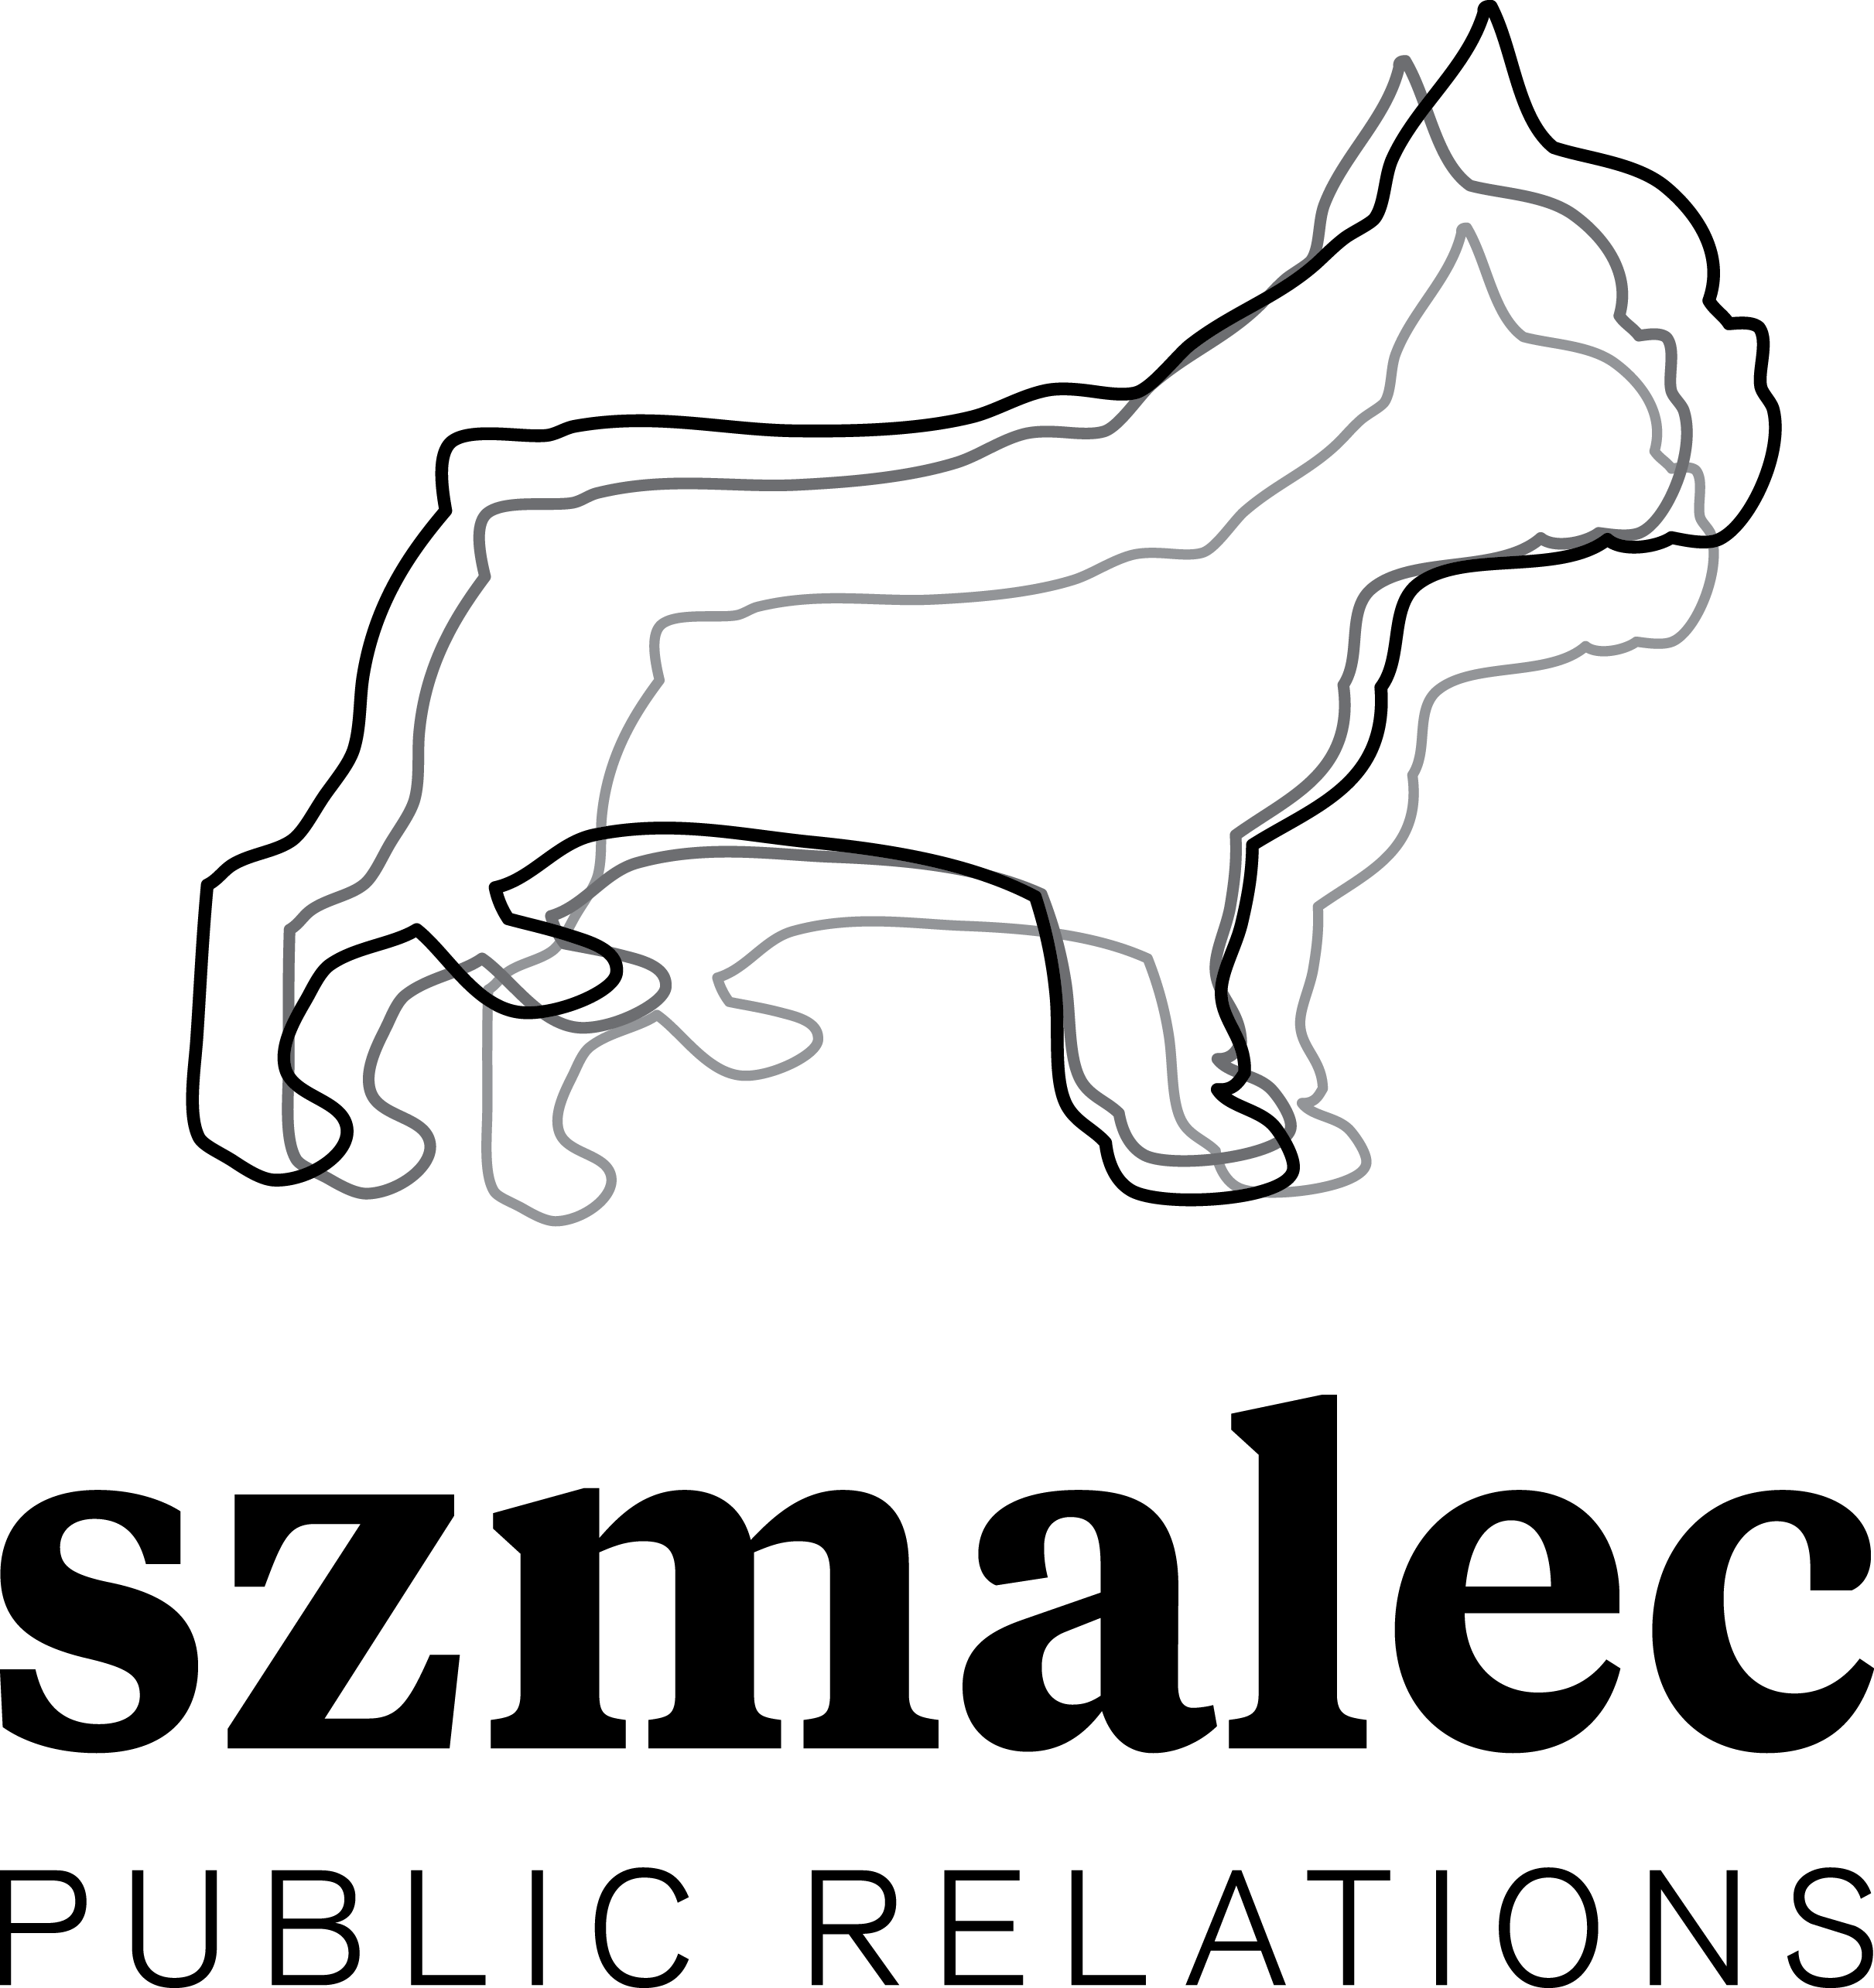 Szmalec PR |  PR & content marketing agency in Poland